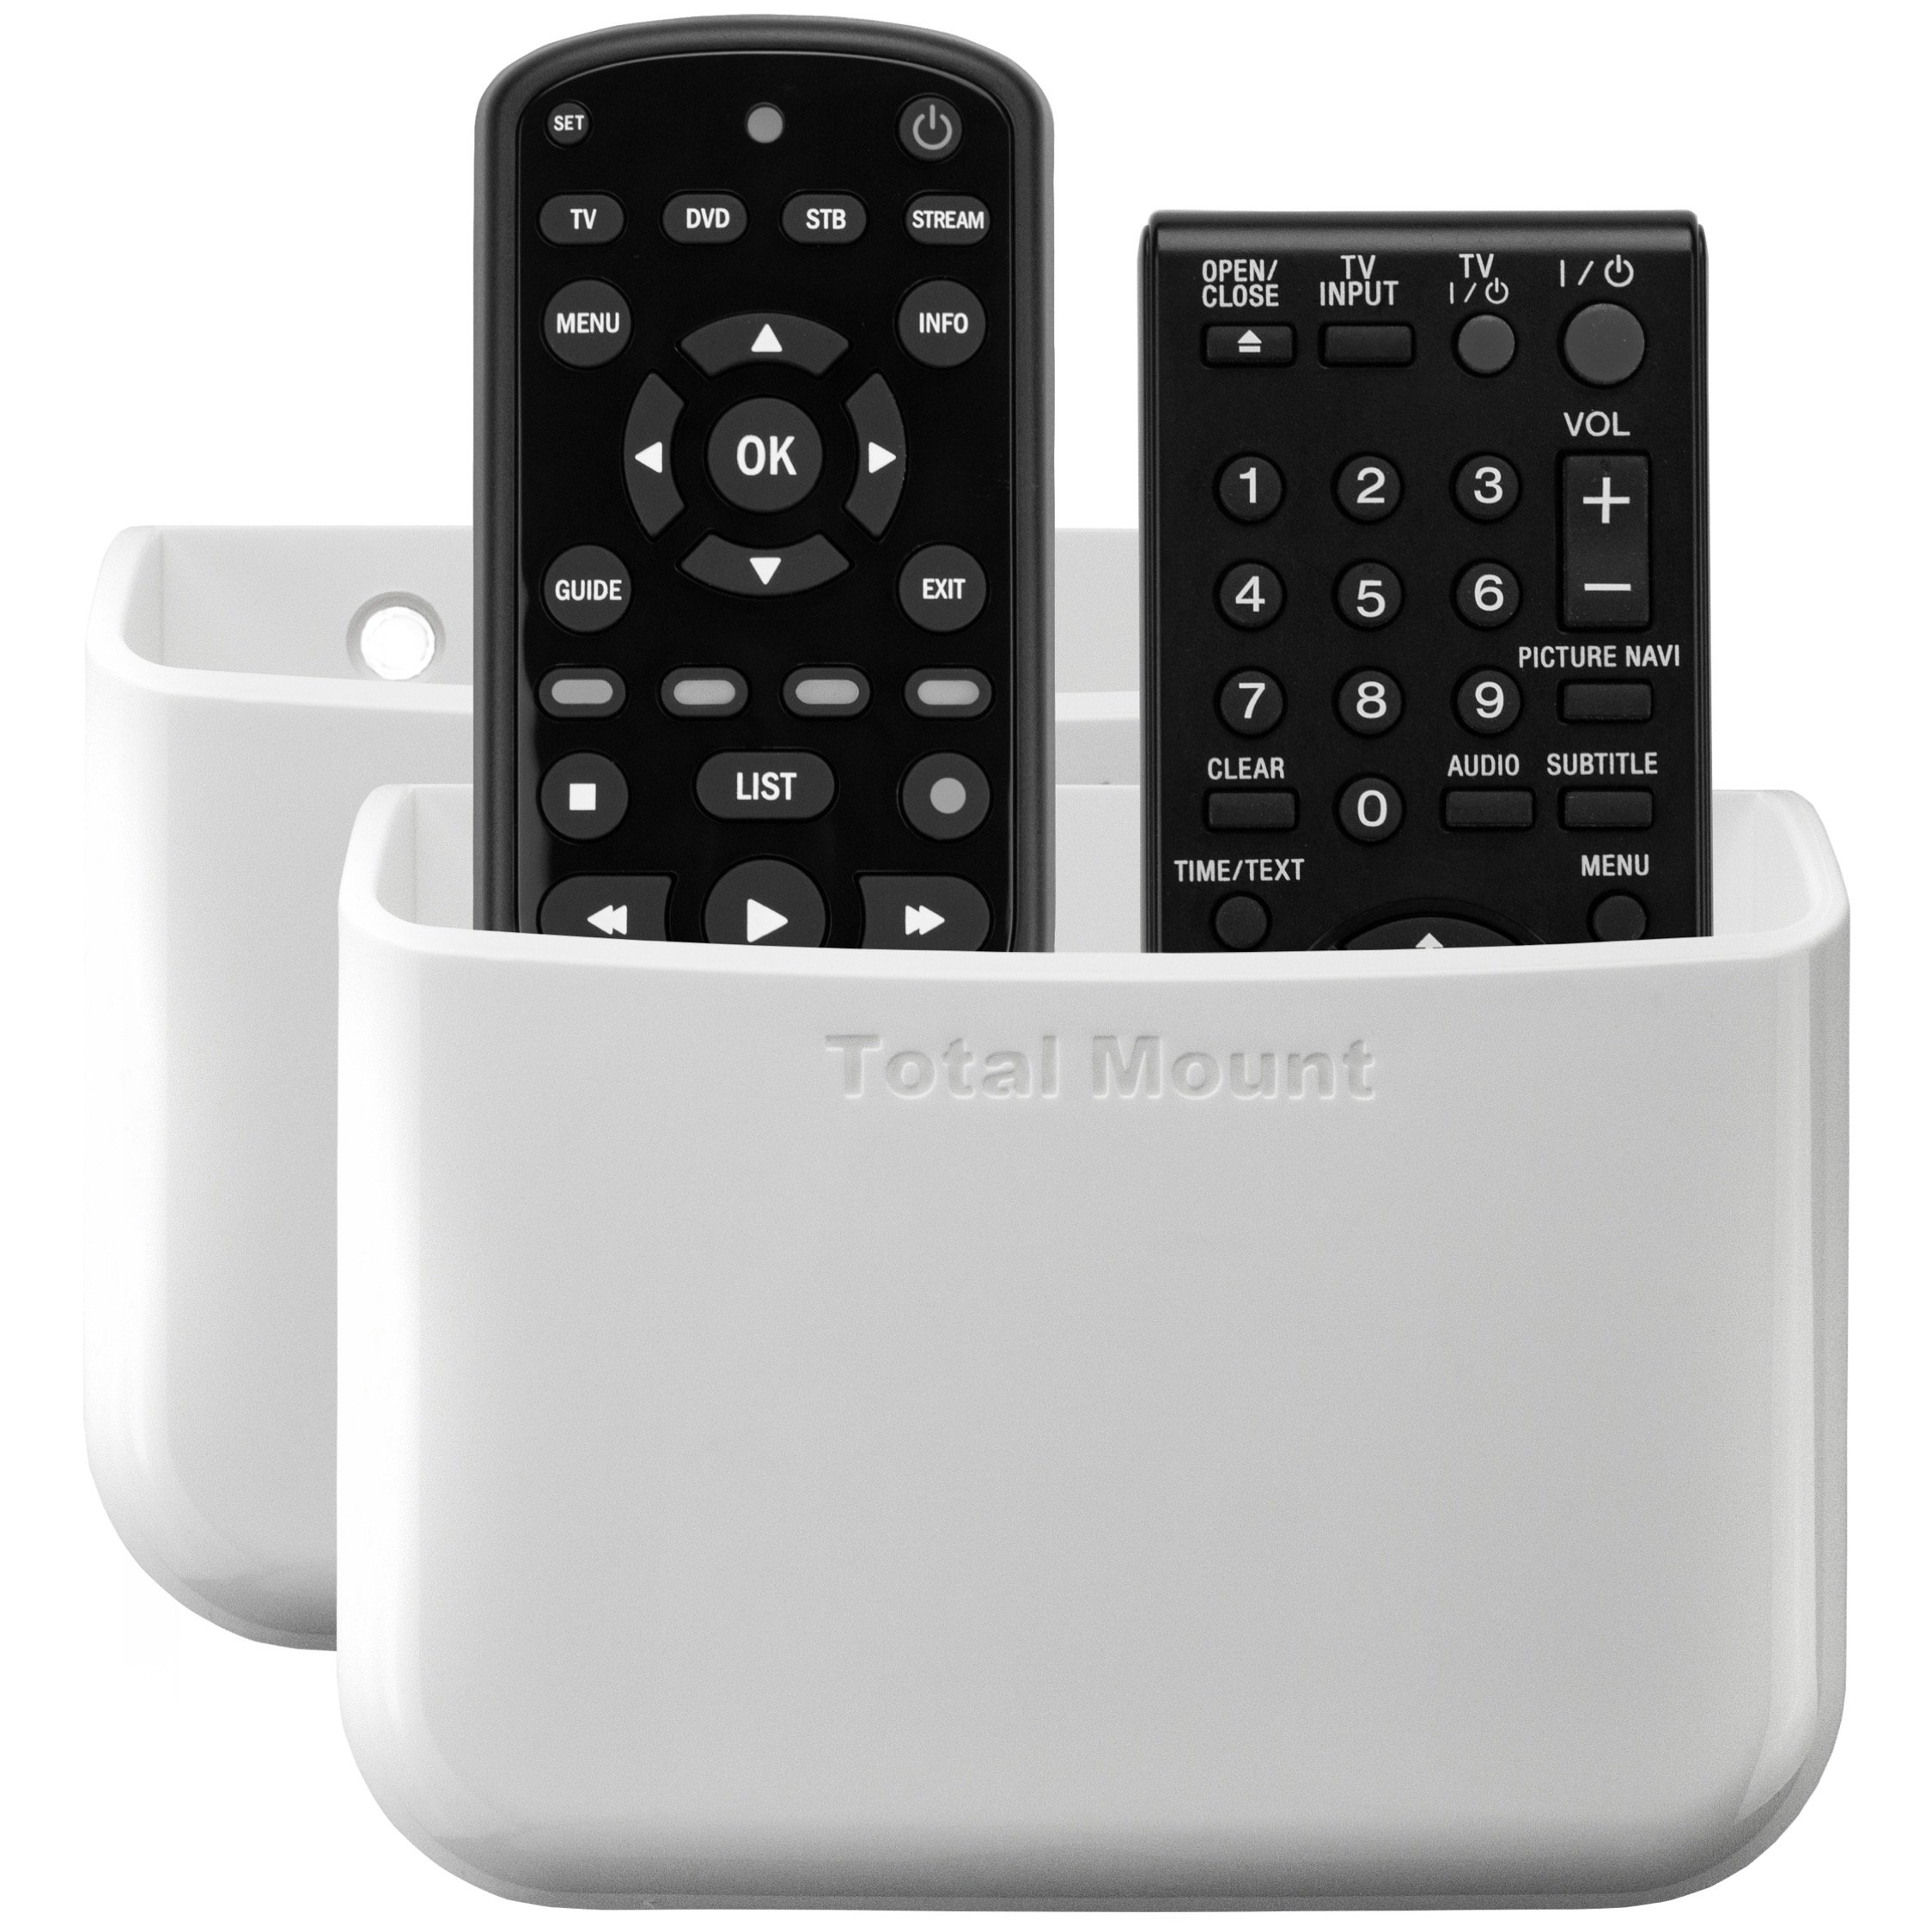 TotalMount Universal Remote Holders (Quantity 2 - Two remotes per holder - White)